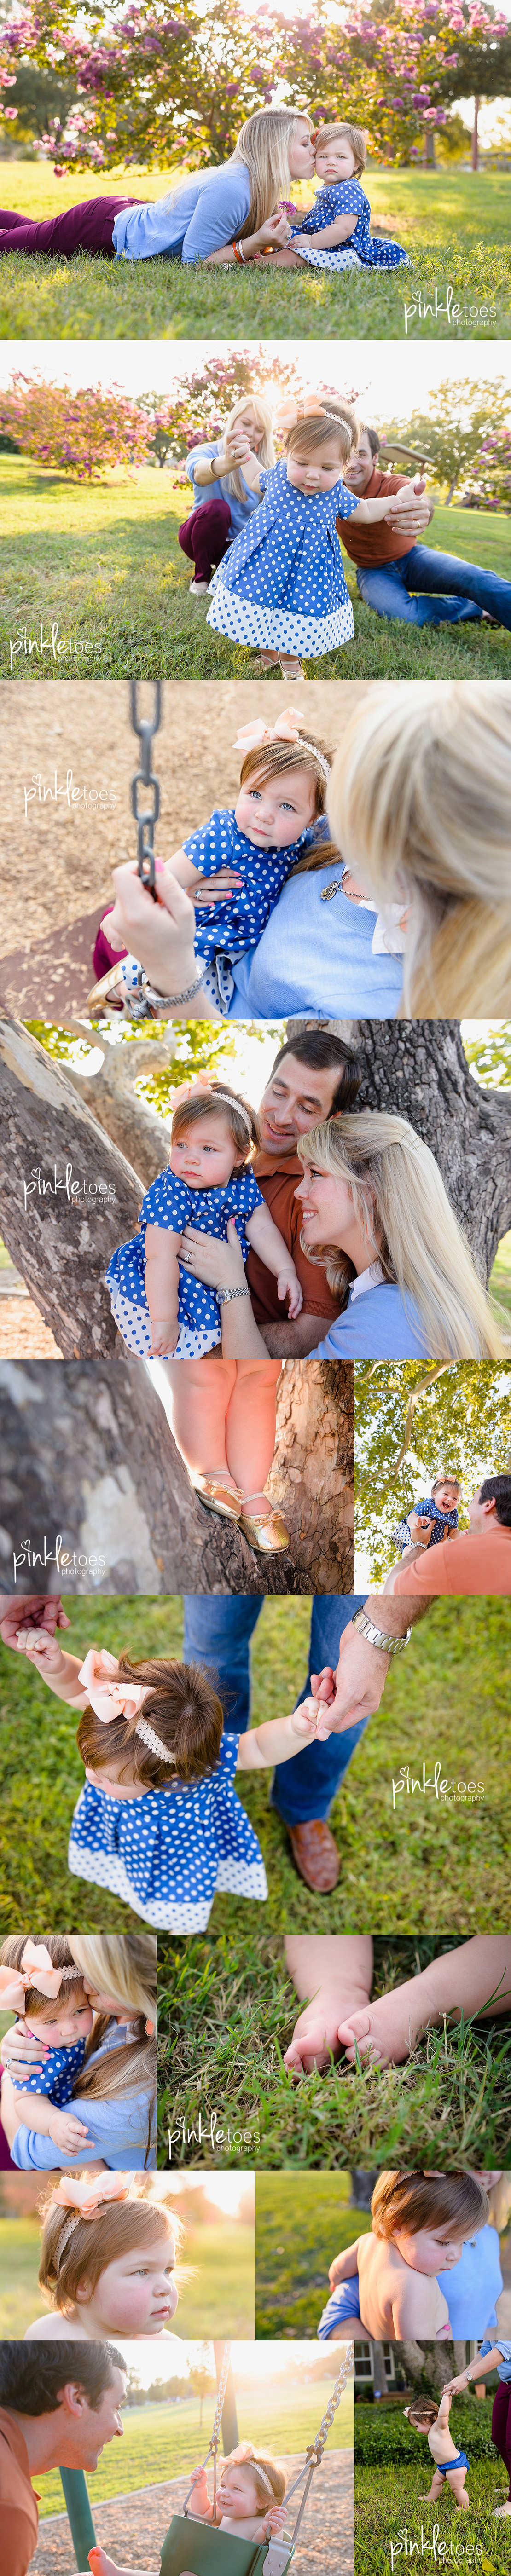 lk-austin-baby-photographer-outdoor-nature-sunset-first-birthday